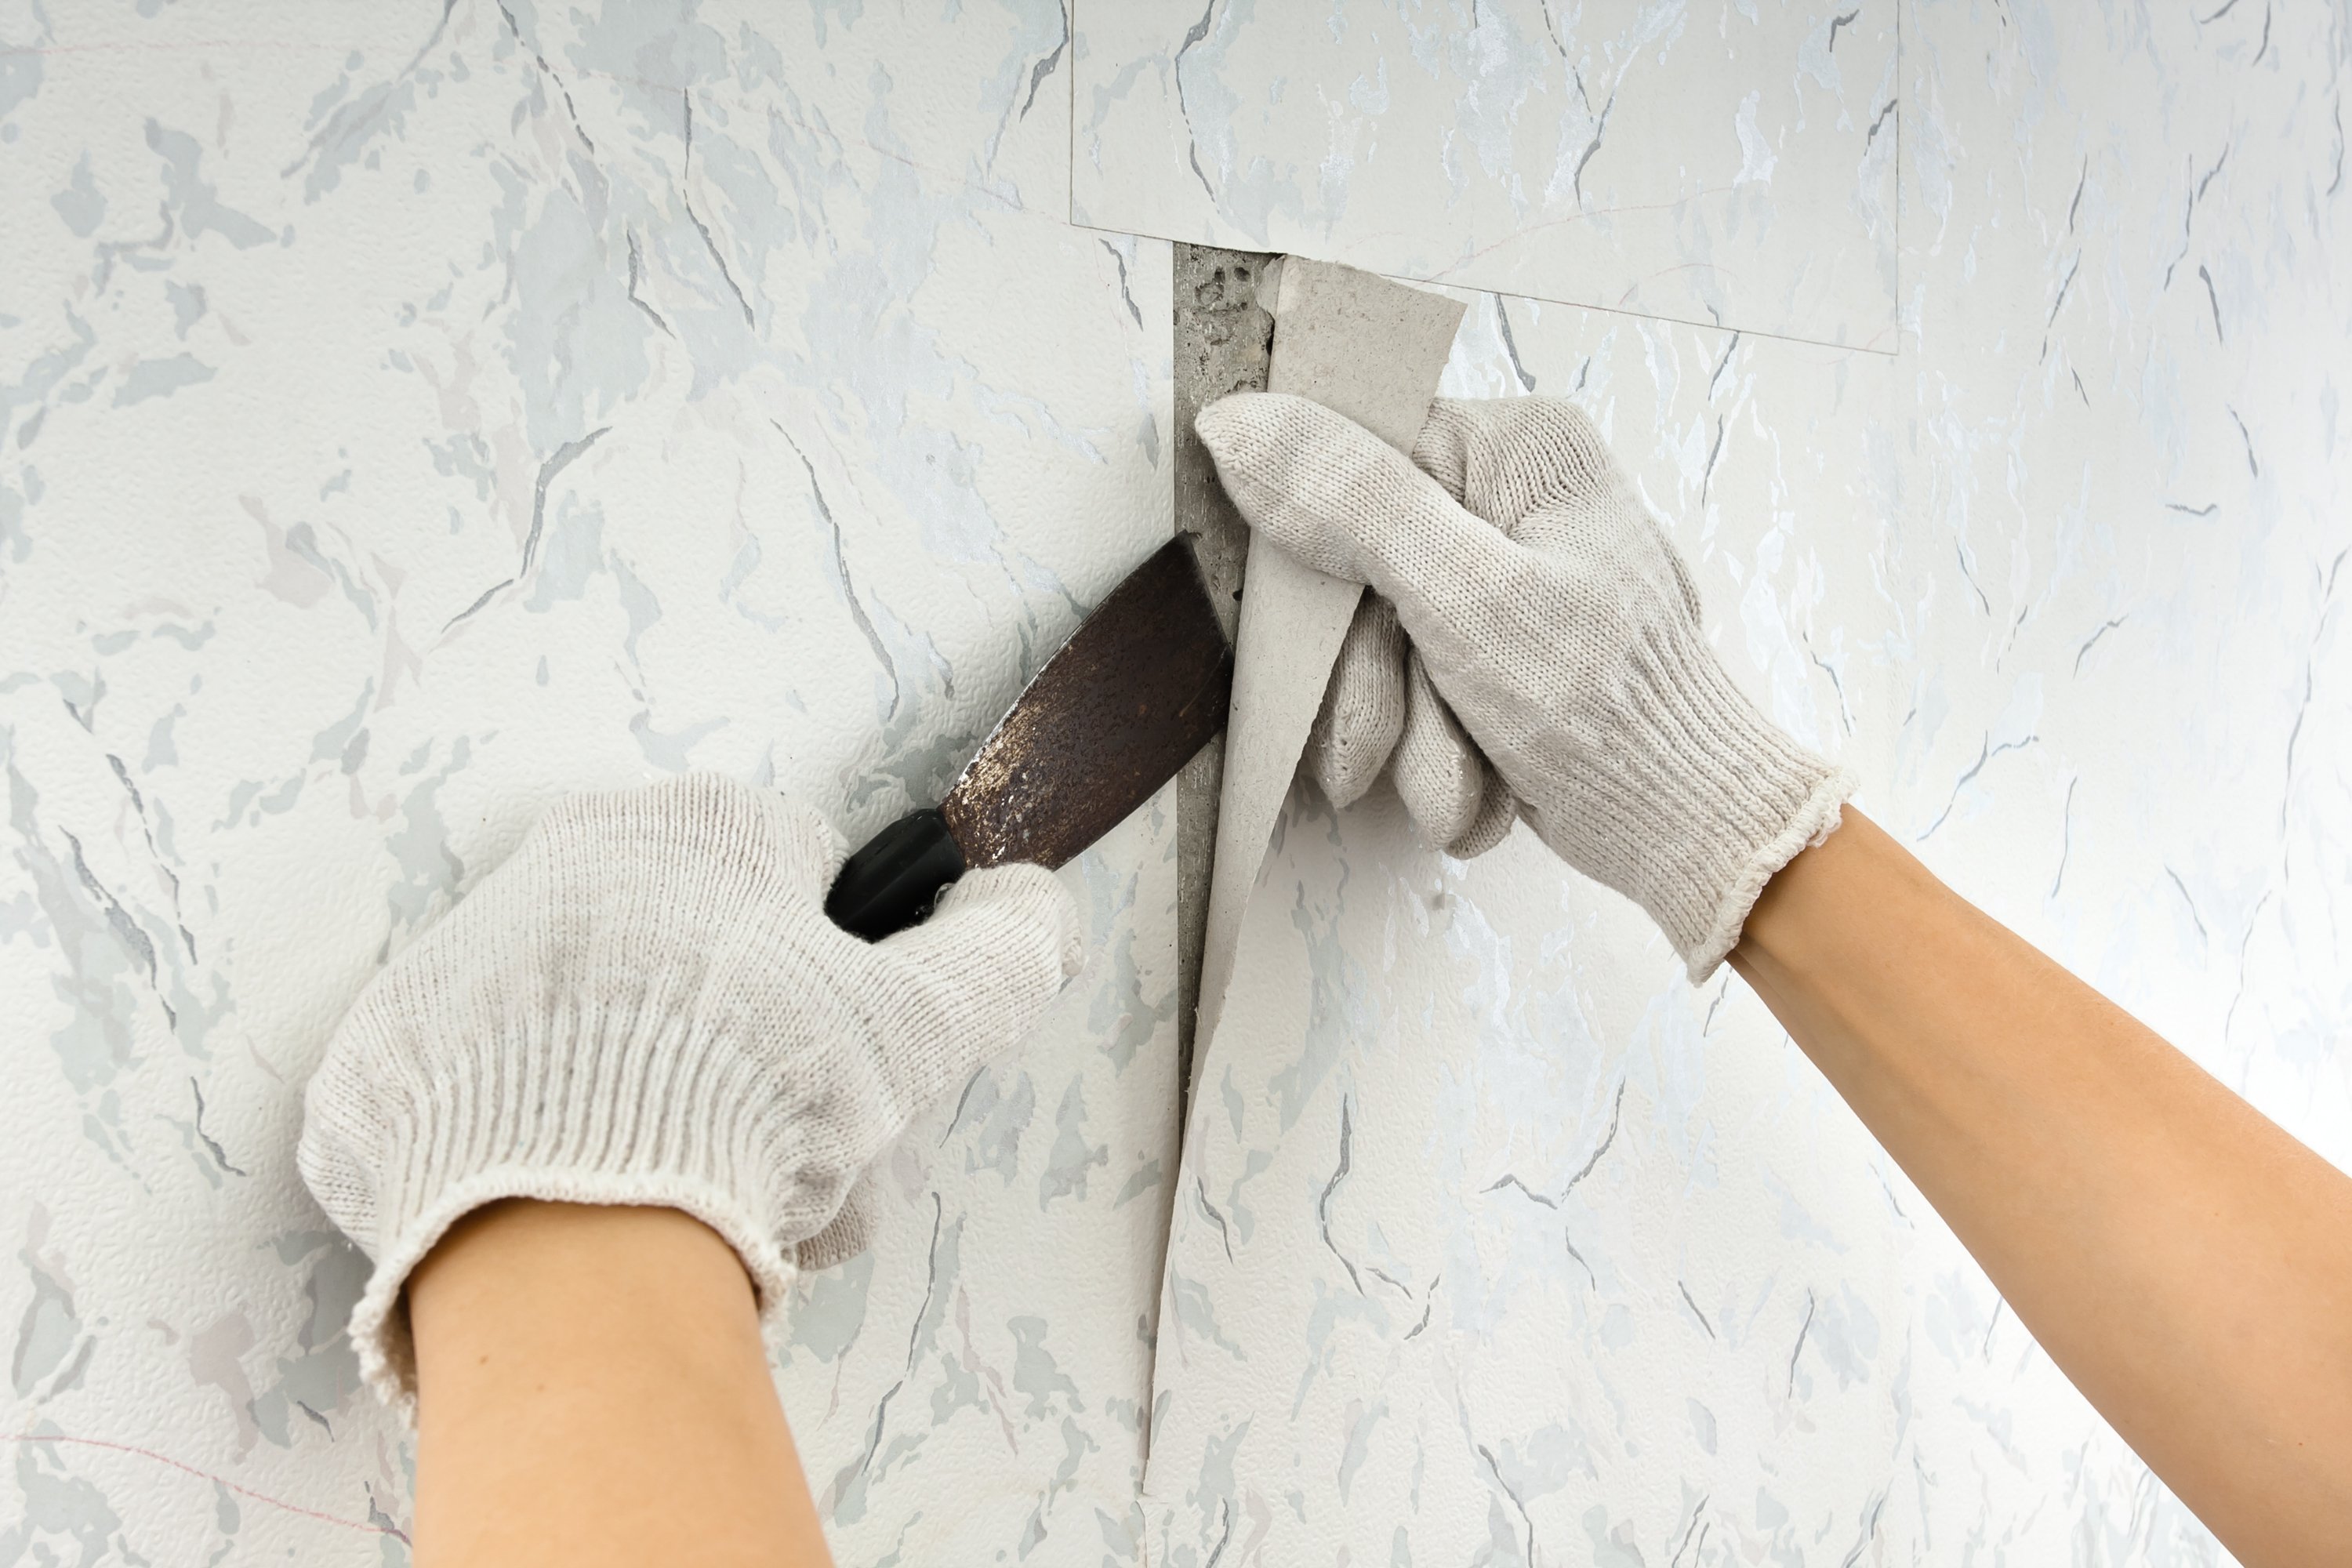 Wallcovering Contractors